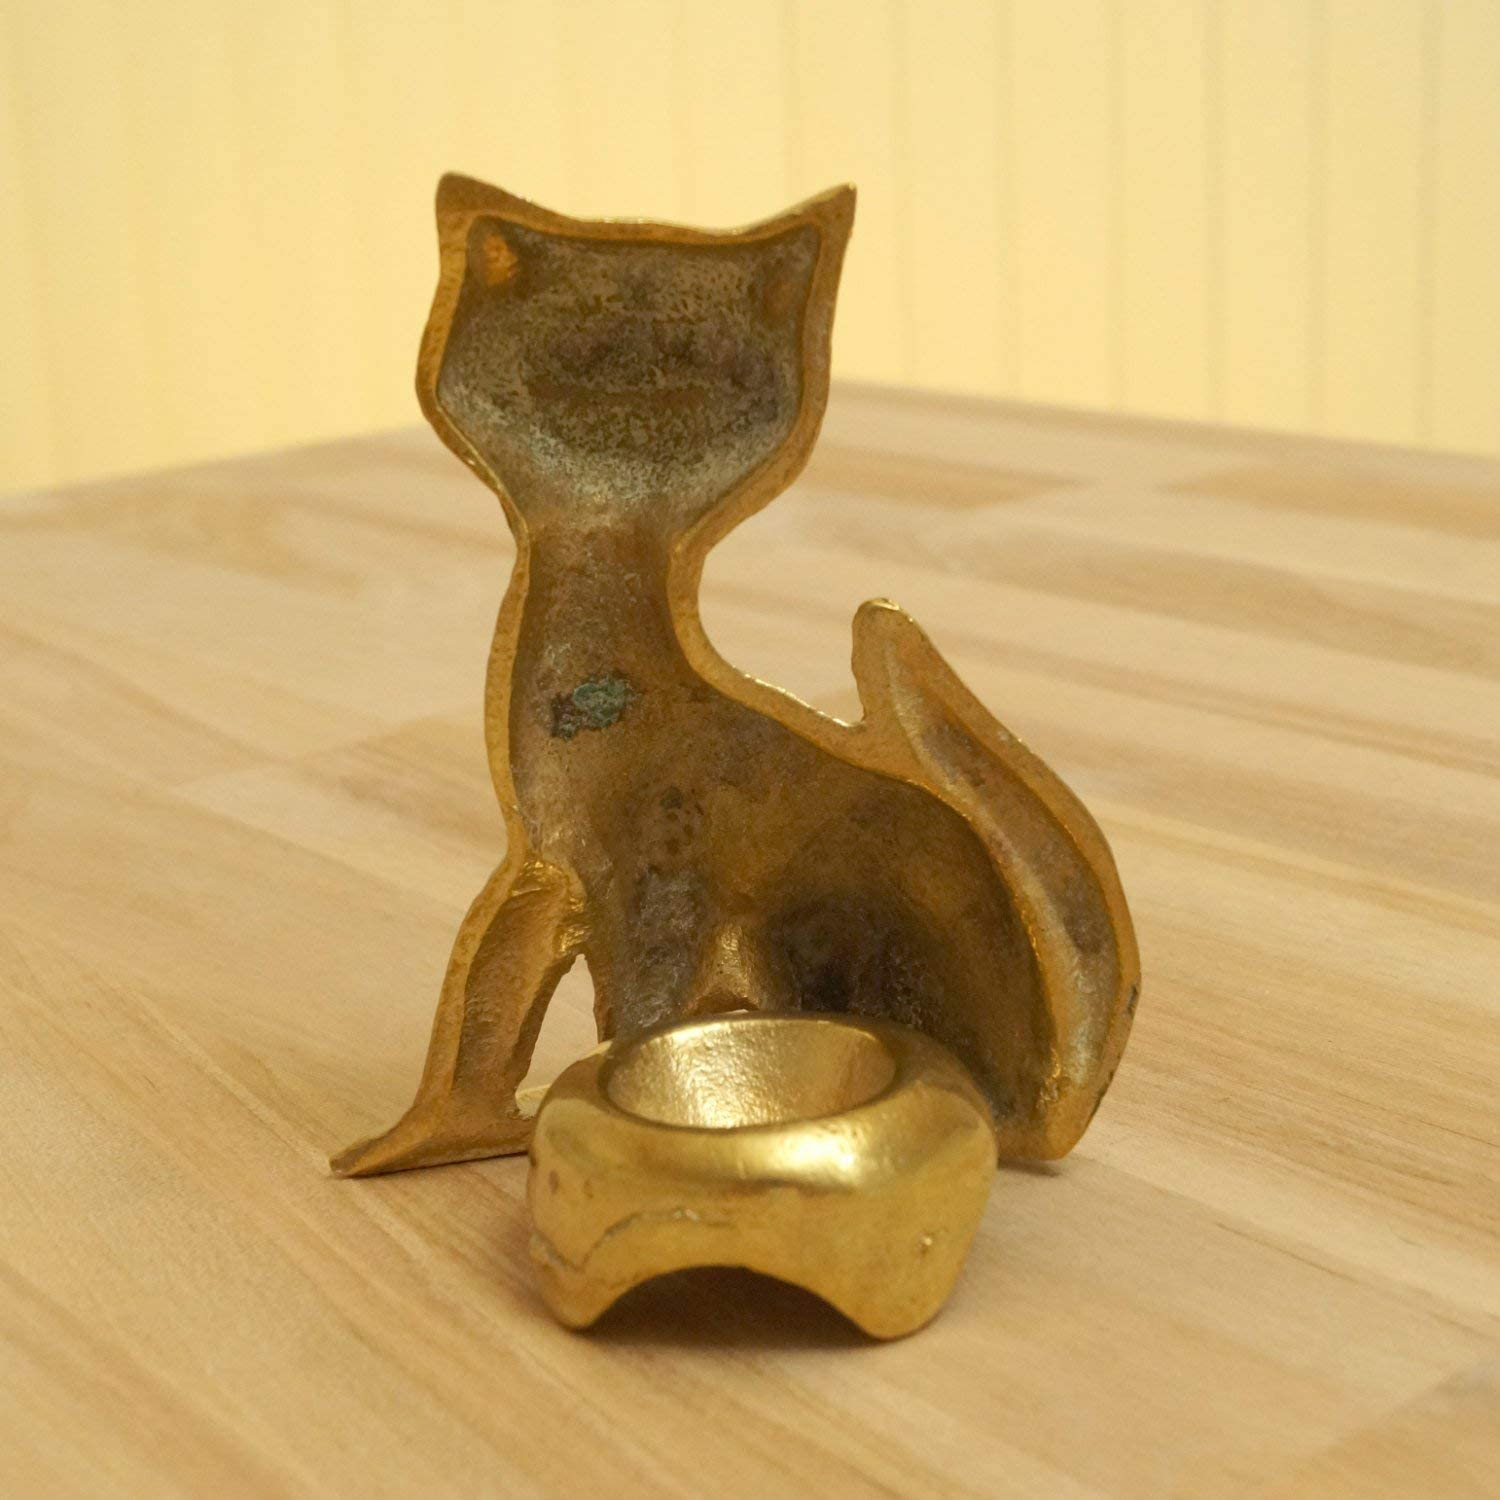 Kitten Vintage Solid Brass Smiling Cat Figurine  candle holder  Ashtray Home decor